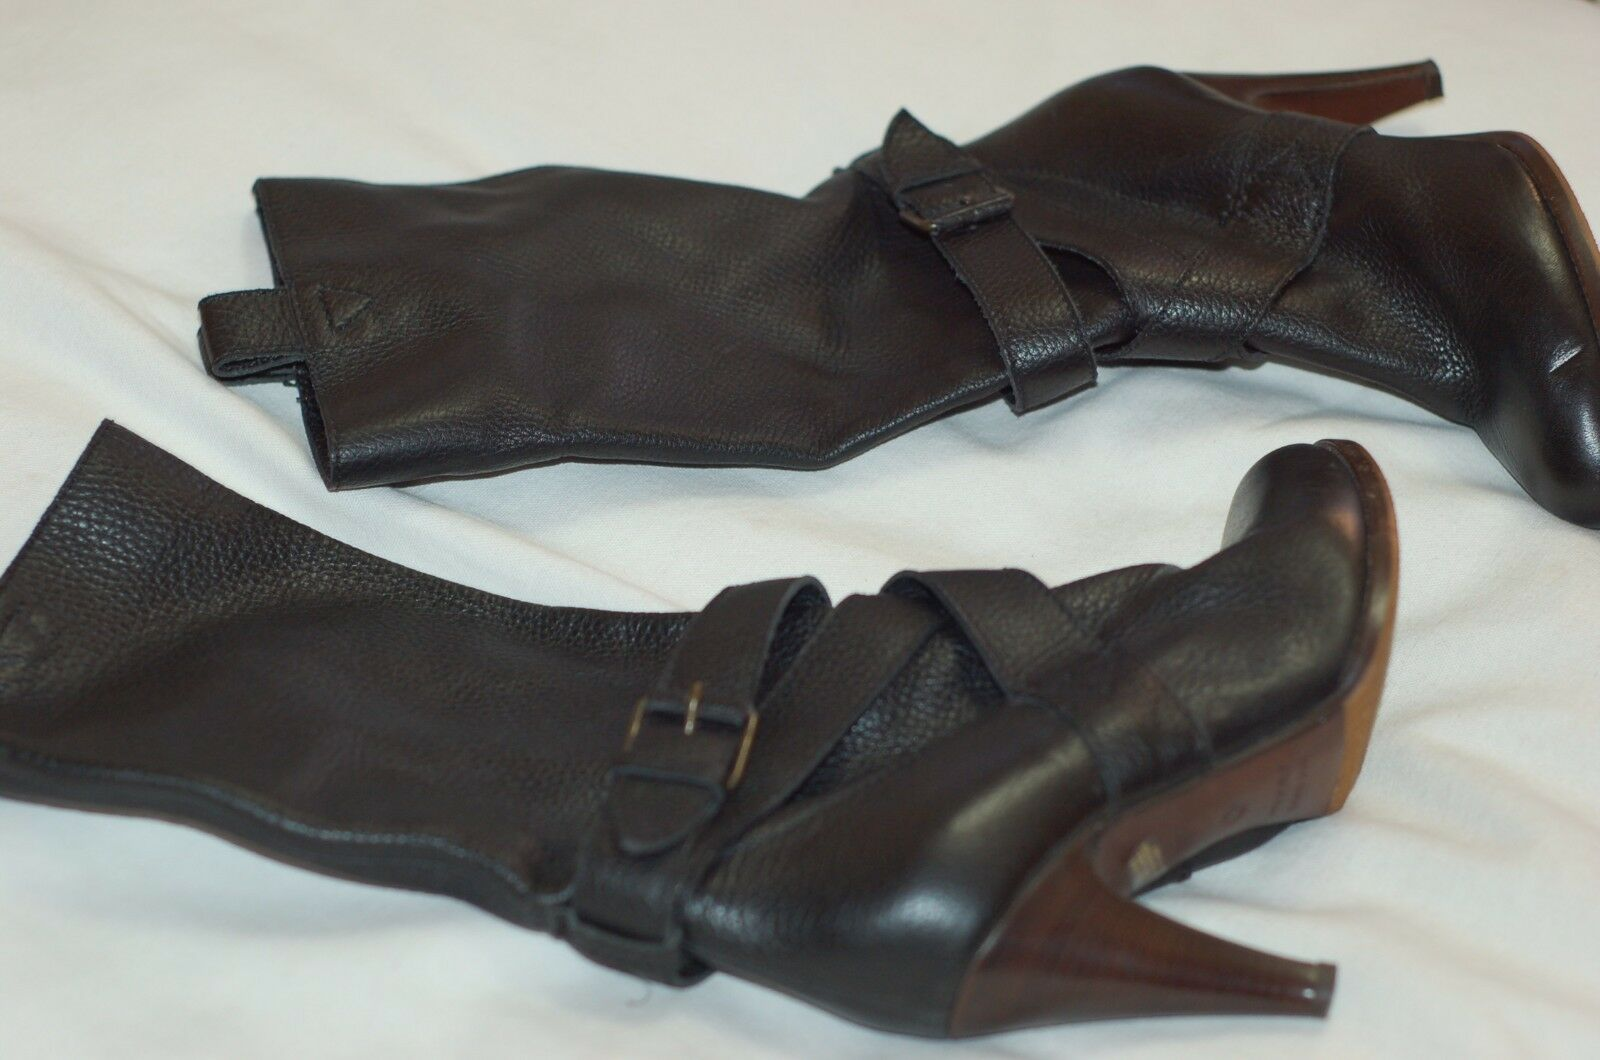 NWOB L'autre Chose Black Leather Heels Mid Calf Boots Shoes Sz 36 Made in Italy